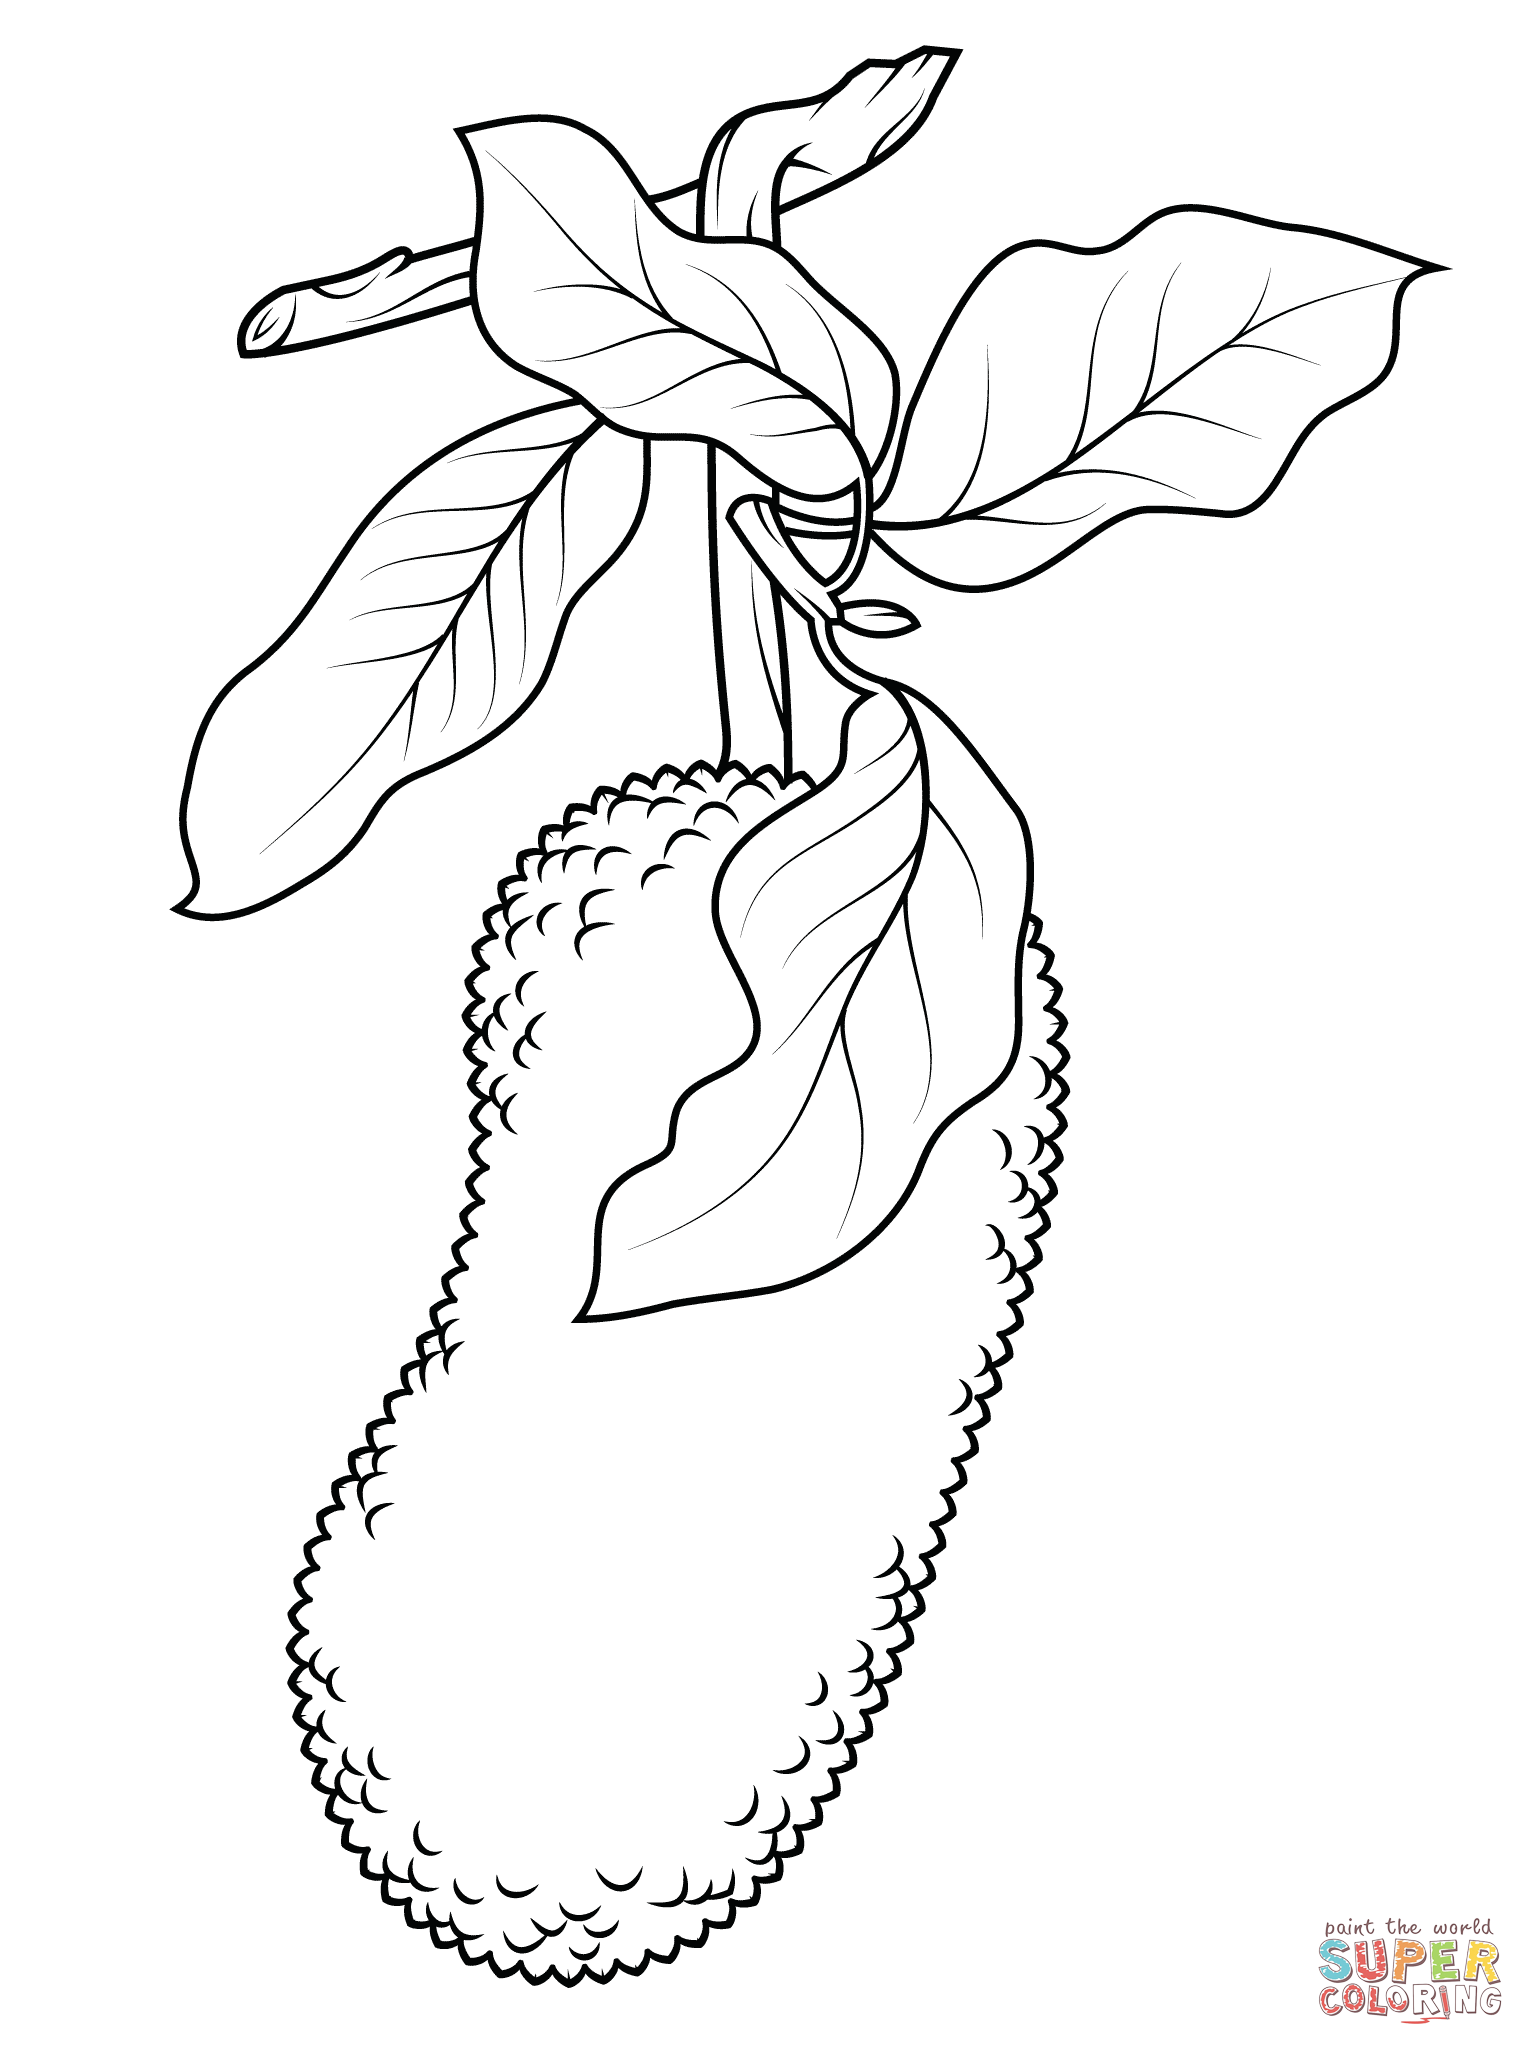 1526x2046 Simplified Blackberry Coloring Page Jackfruit On Branch Free